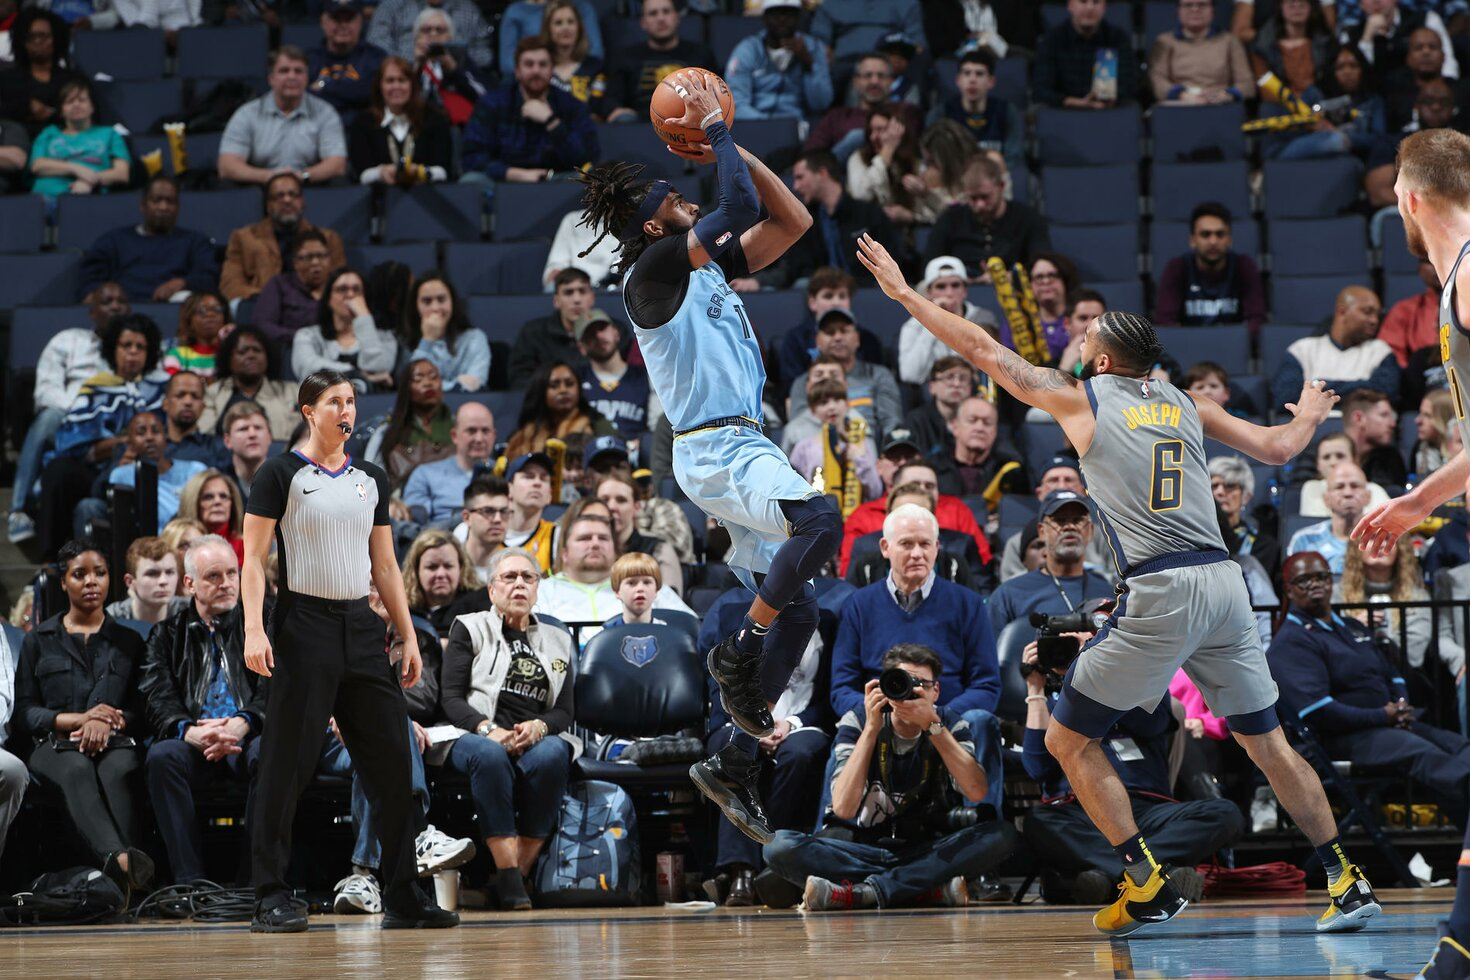 MEMPHIS, TN - JANUARY 26:  Mike Conley #11 of the Memphis Grizzlies shoots the ball against the Indiana Pacers on January 26, 2019 at FedExForum in Memphis, Tennessee.